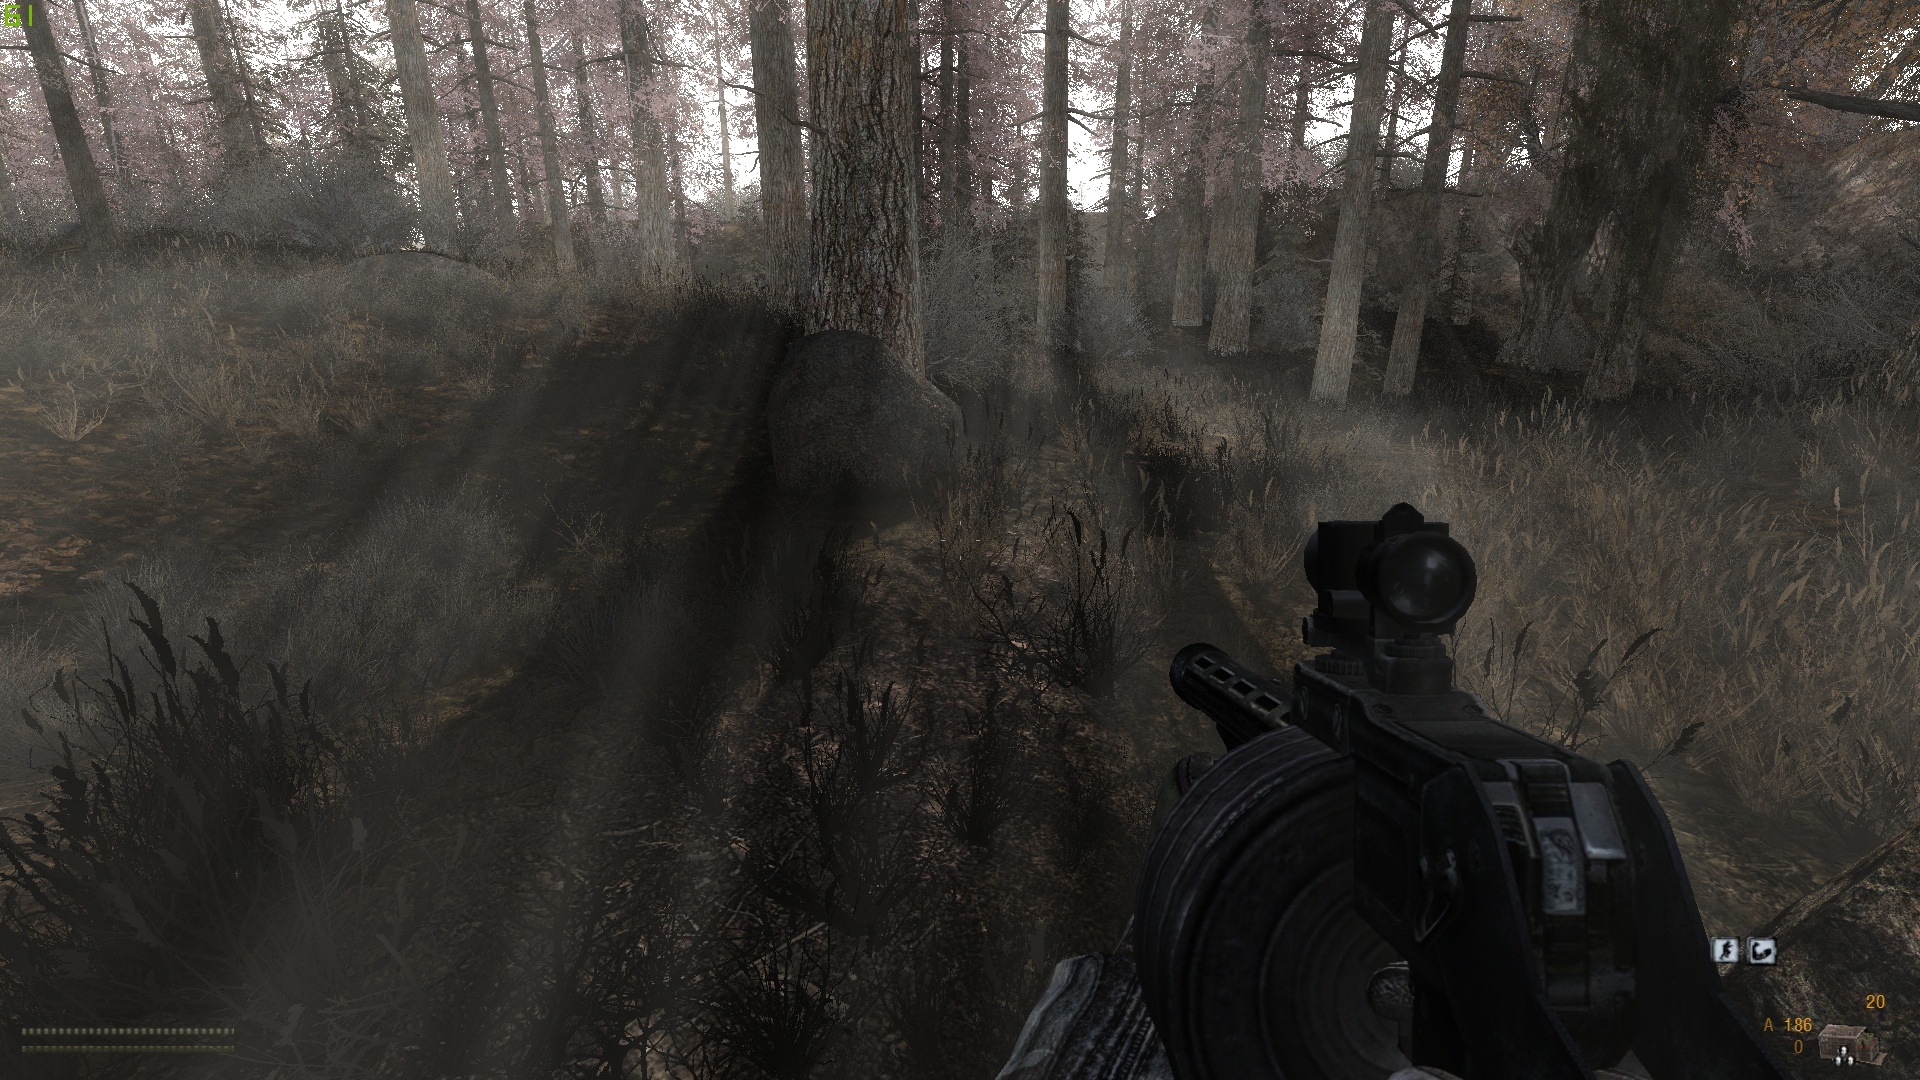 ss_Администратор_05-23-18_19-57-53_(l10_red_forest).jpg - S.T.A.L.K.E.R.: Call of Pripyat